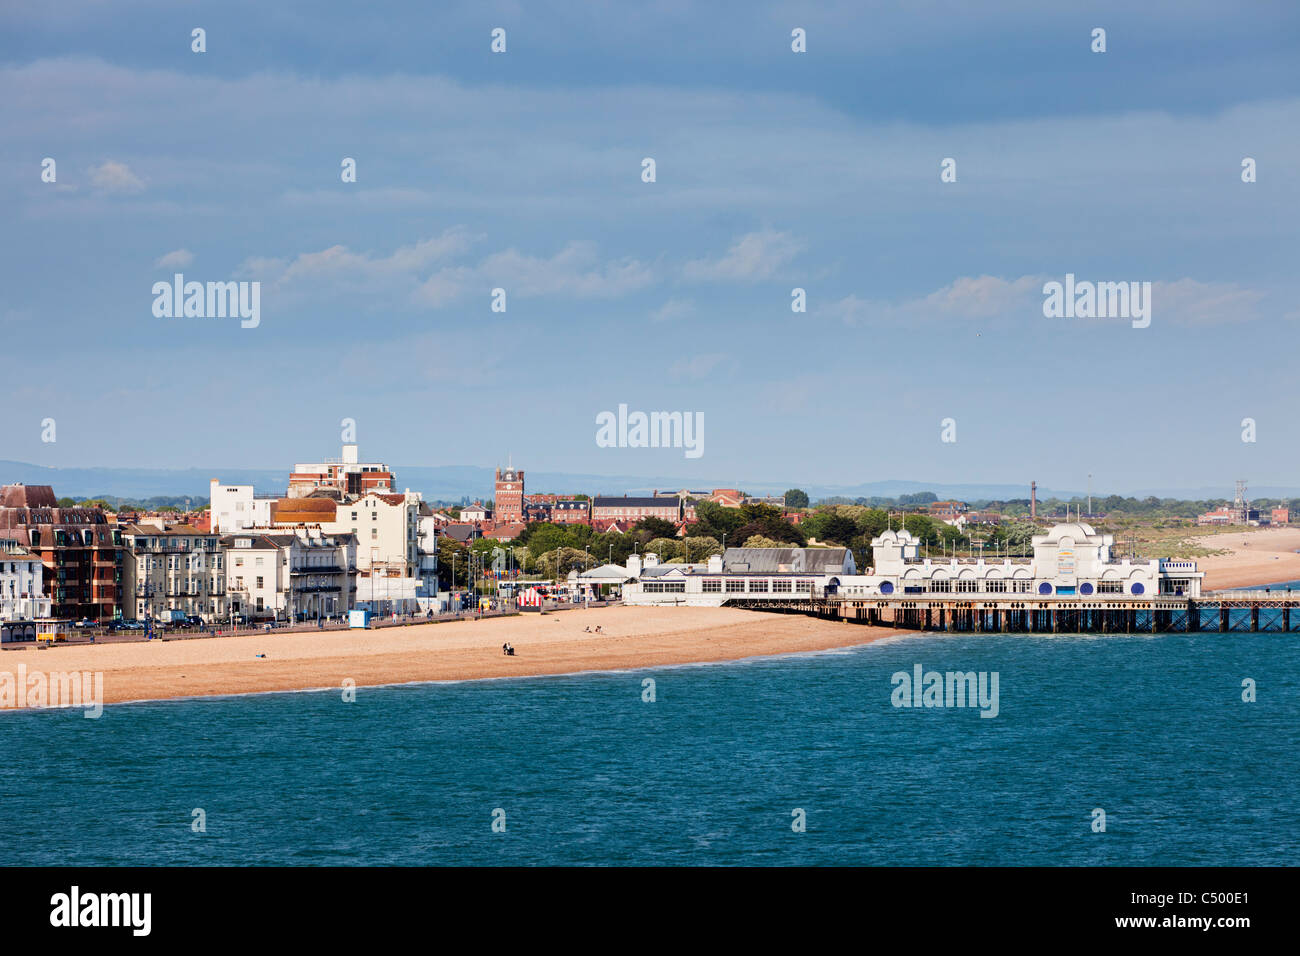 Southsea Pier and Beach, Portsmouth, England UK Stock Photo